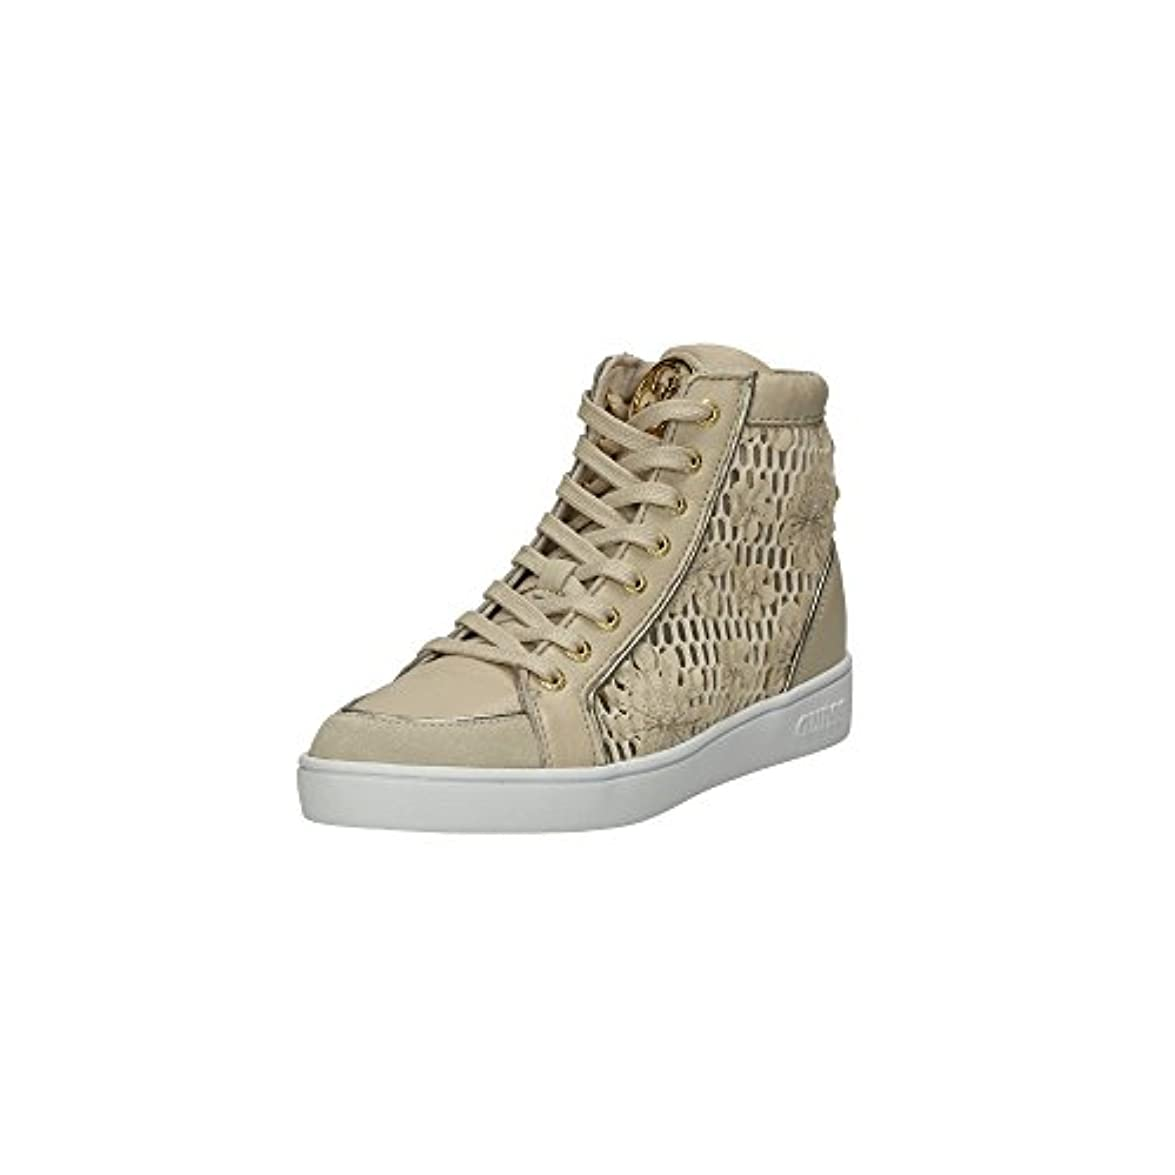 Guess Donna Sneakers Alte Flgrc1 ele12 Beige